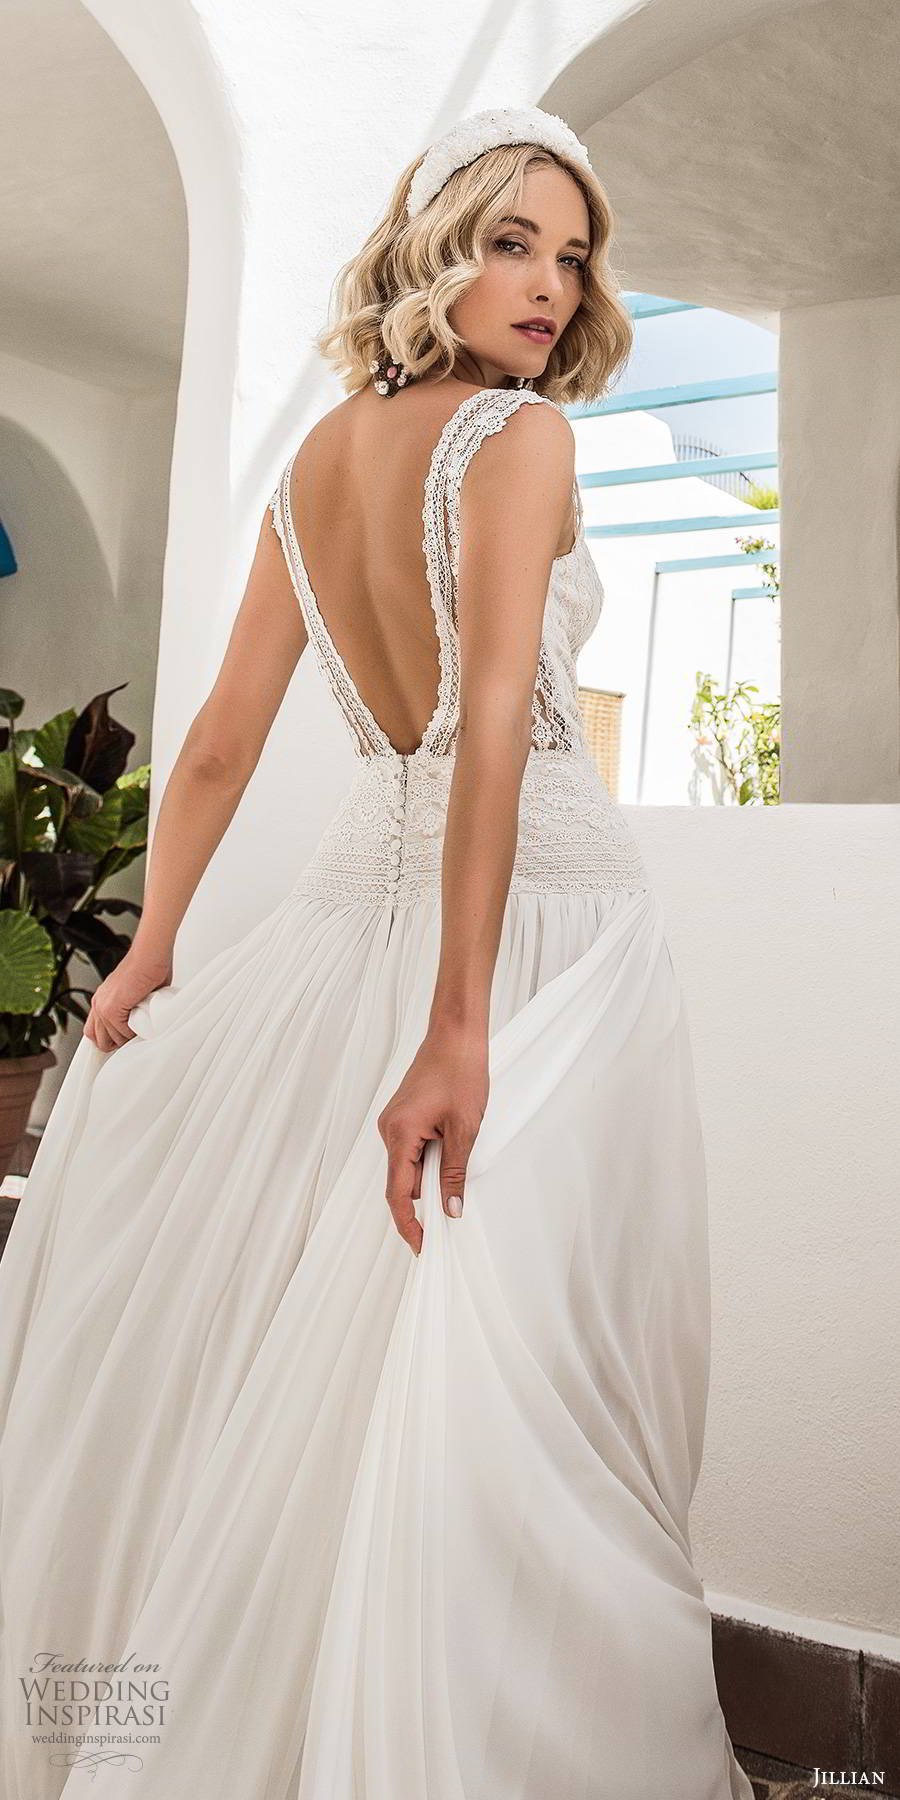 jillian sposa 2020 bridal sleeveless thick straps embellished bodice drop waist romantic boho a line ball gown wedding dress scoop back (9) bv